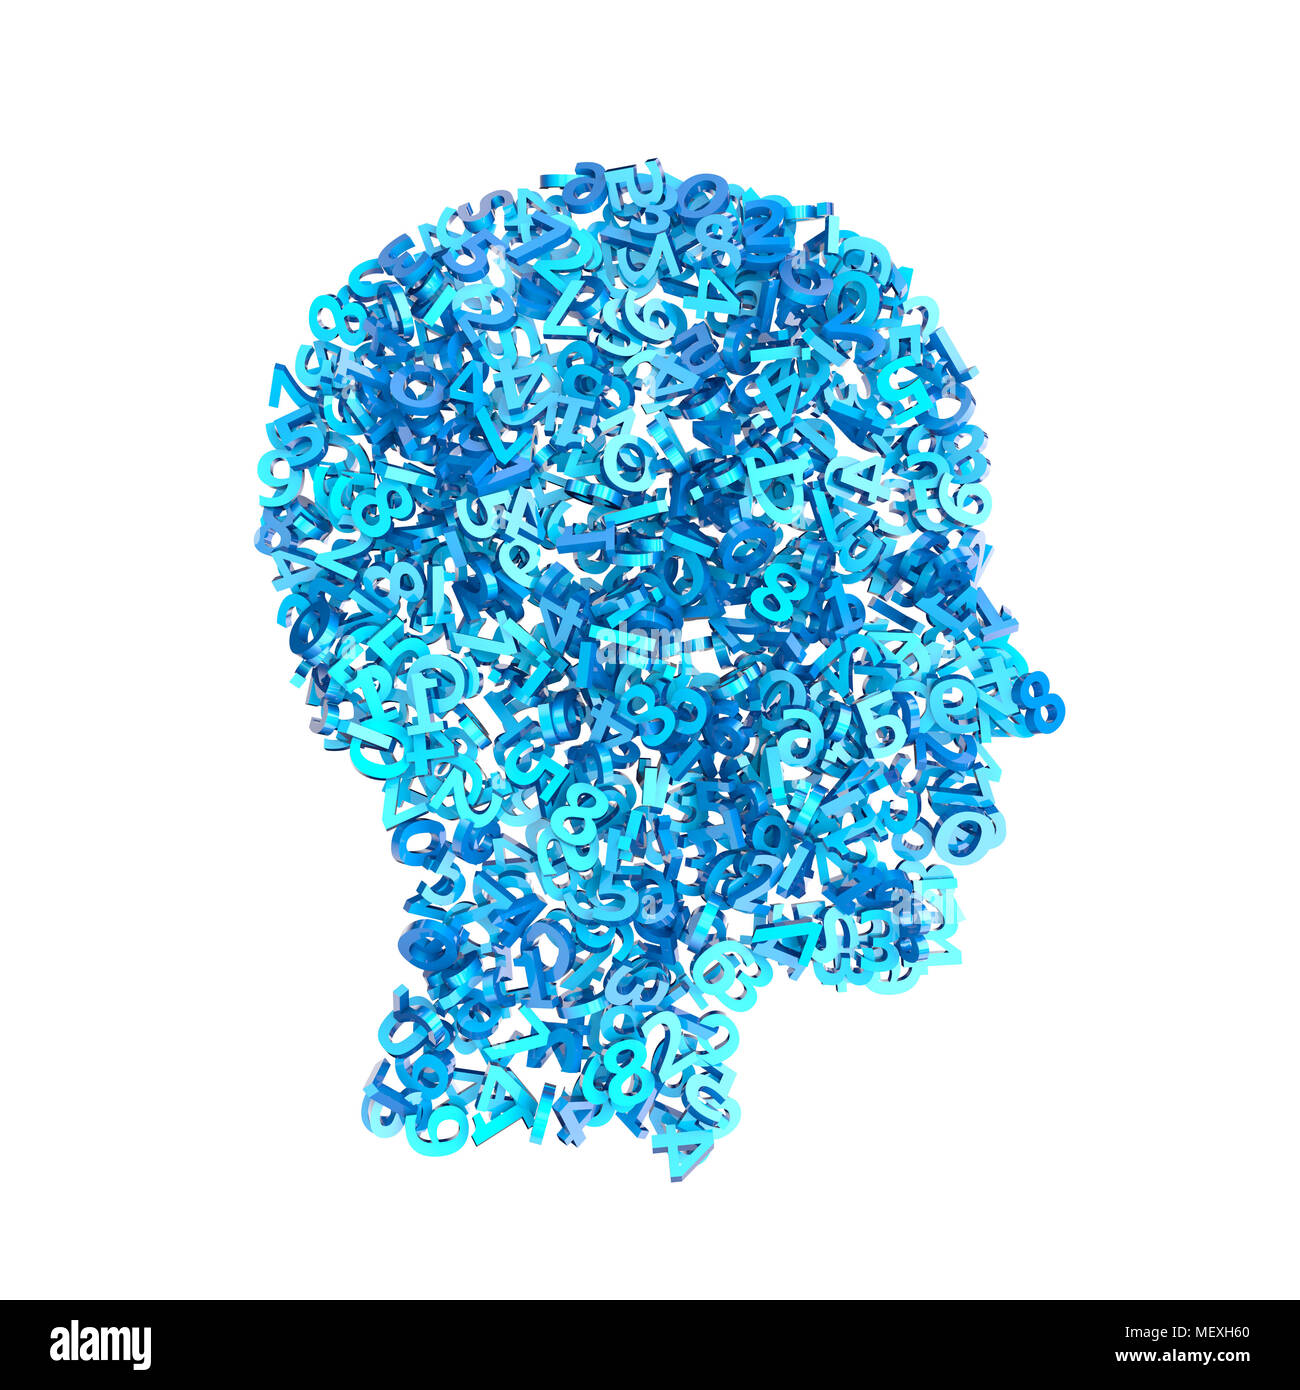 3d rendering image of humand head made with numbers - Stock Image